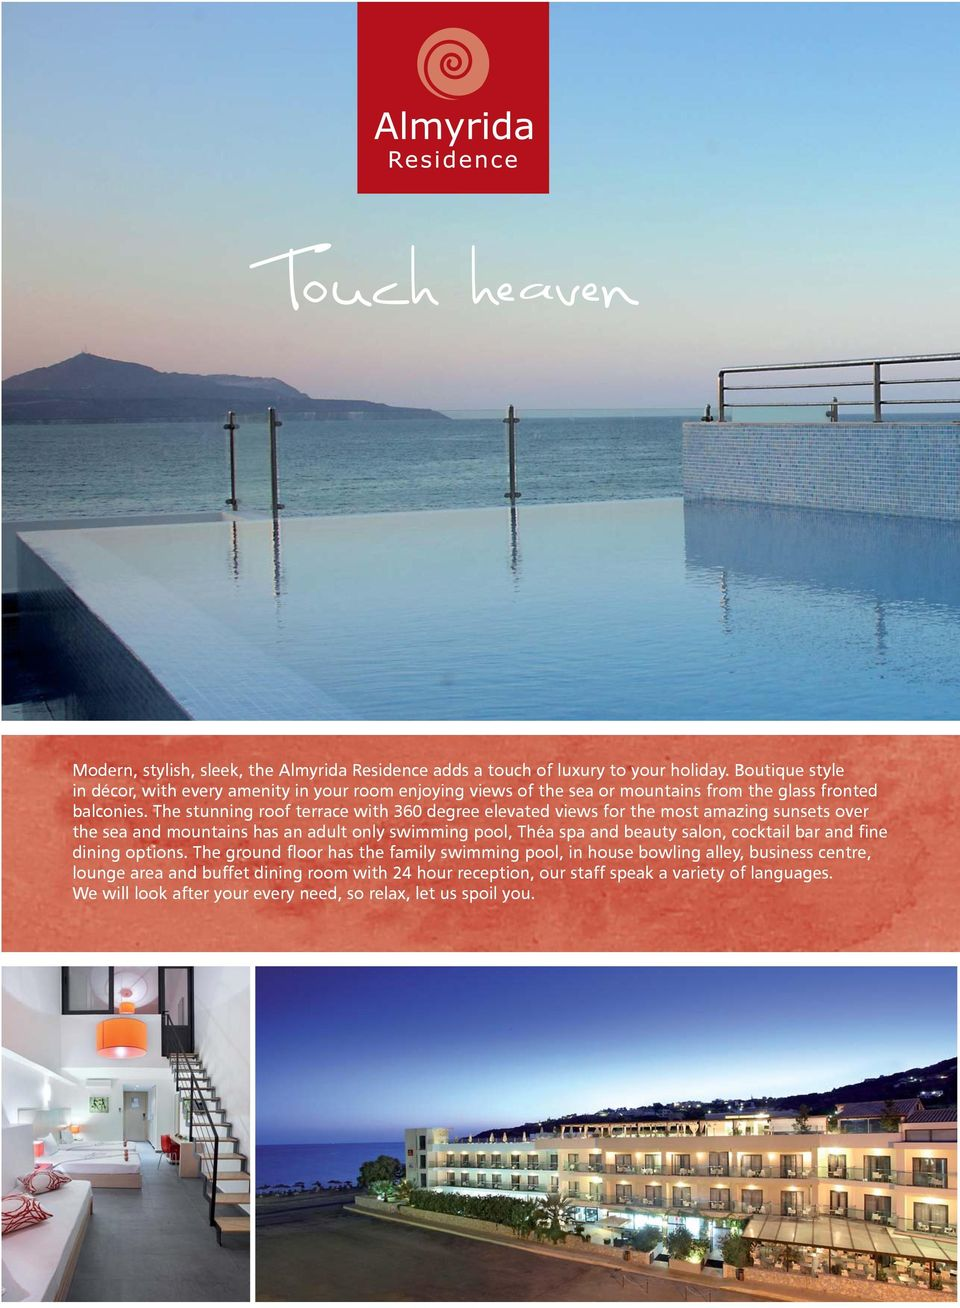 The stunning roof terrace with 360 degree elevated views for the most amazing sunsets over the sea and mountains has an adult only swimming pool, Théa spa and beauty